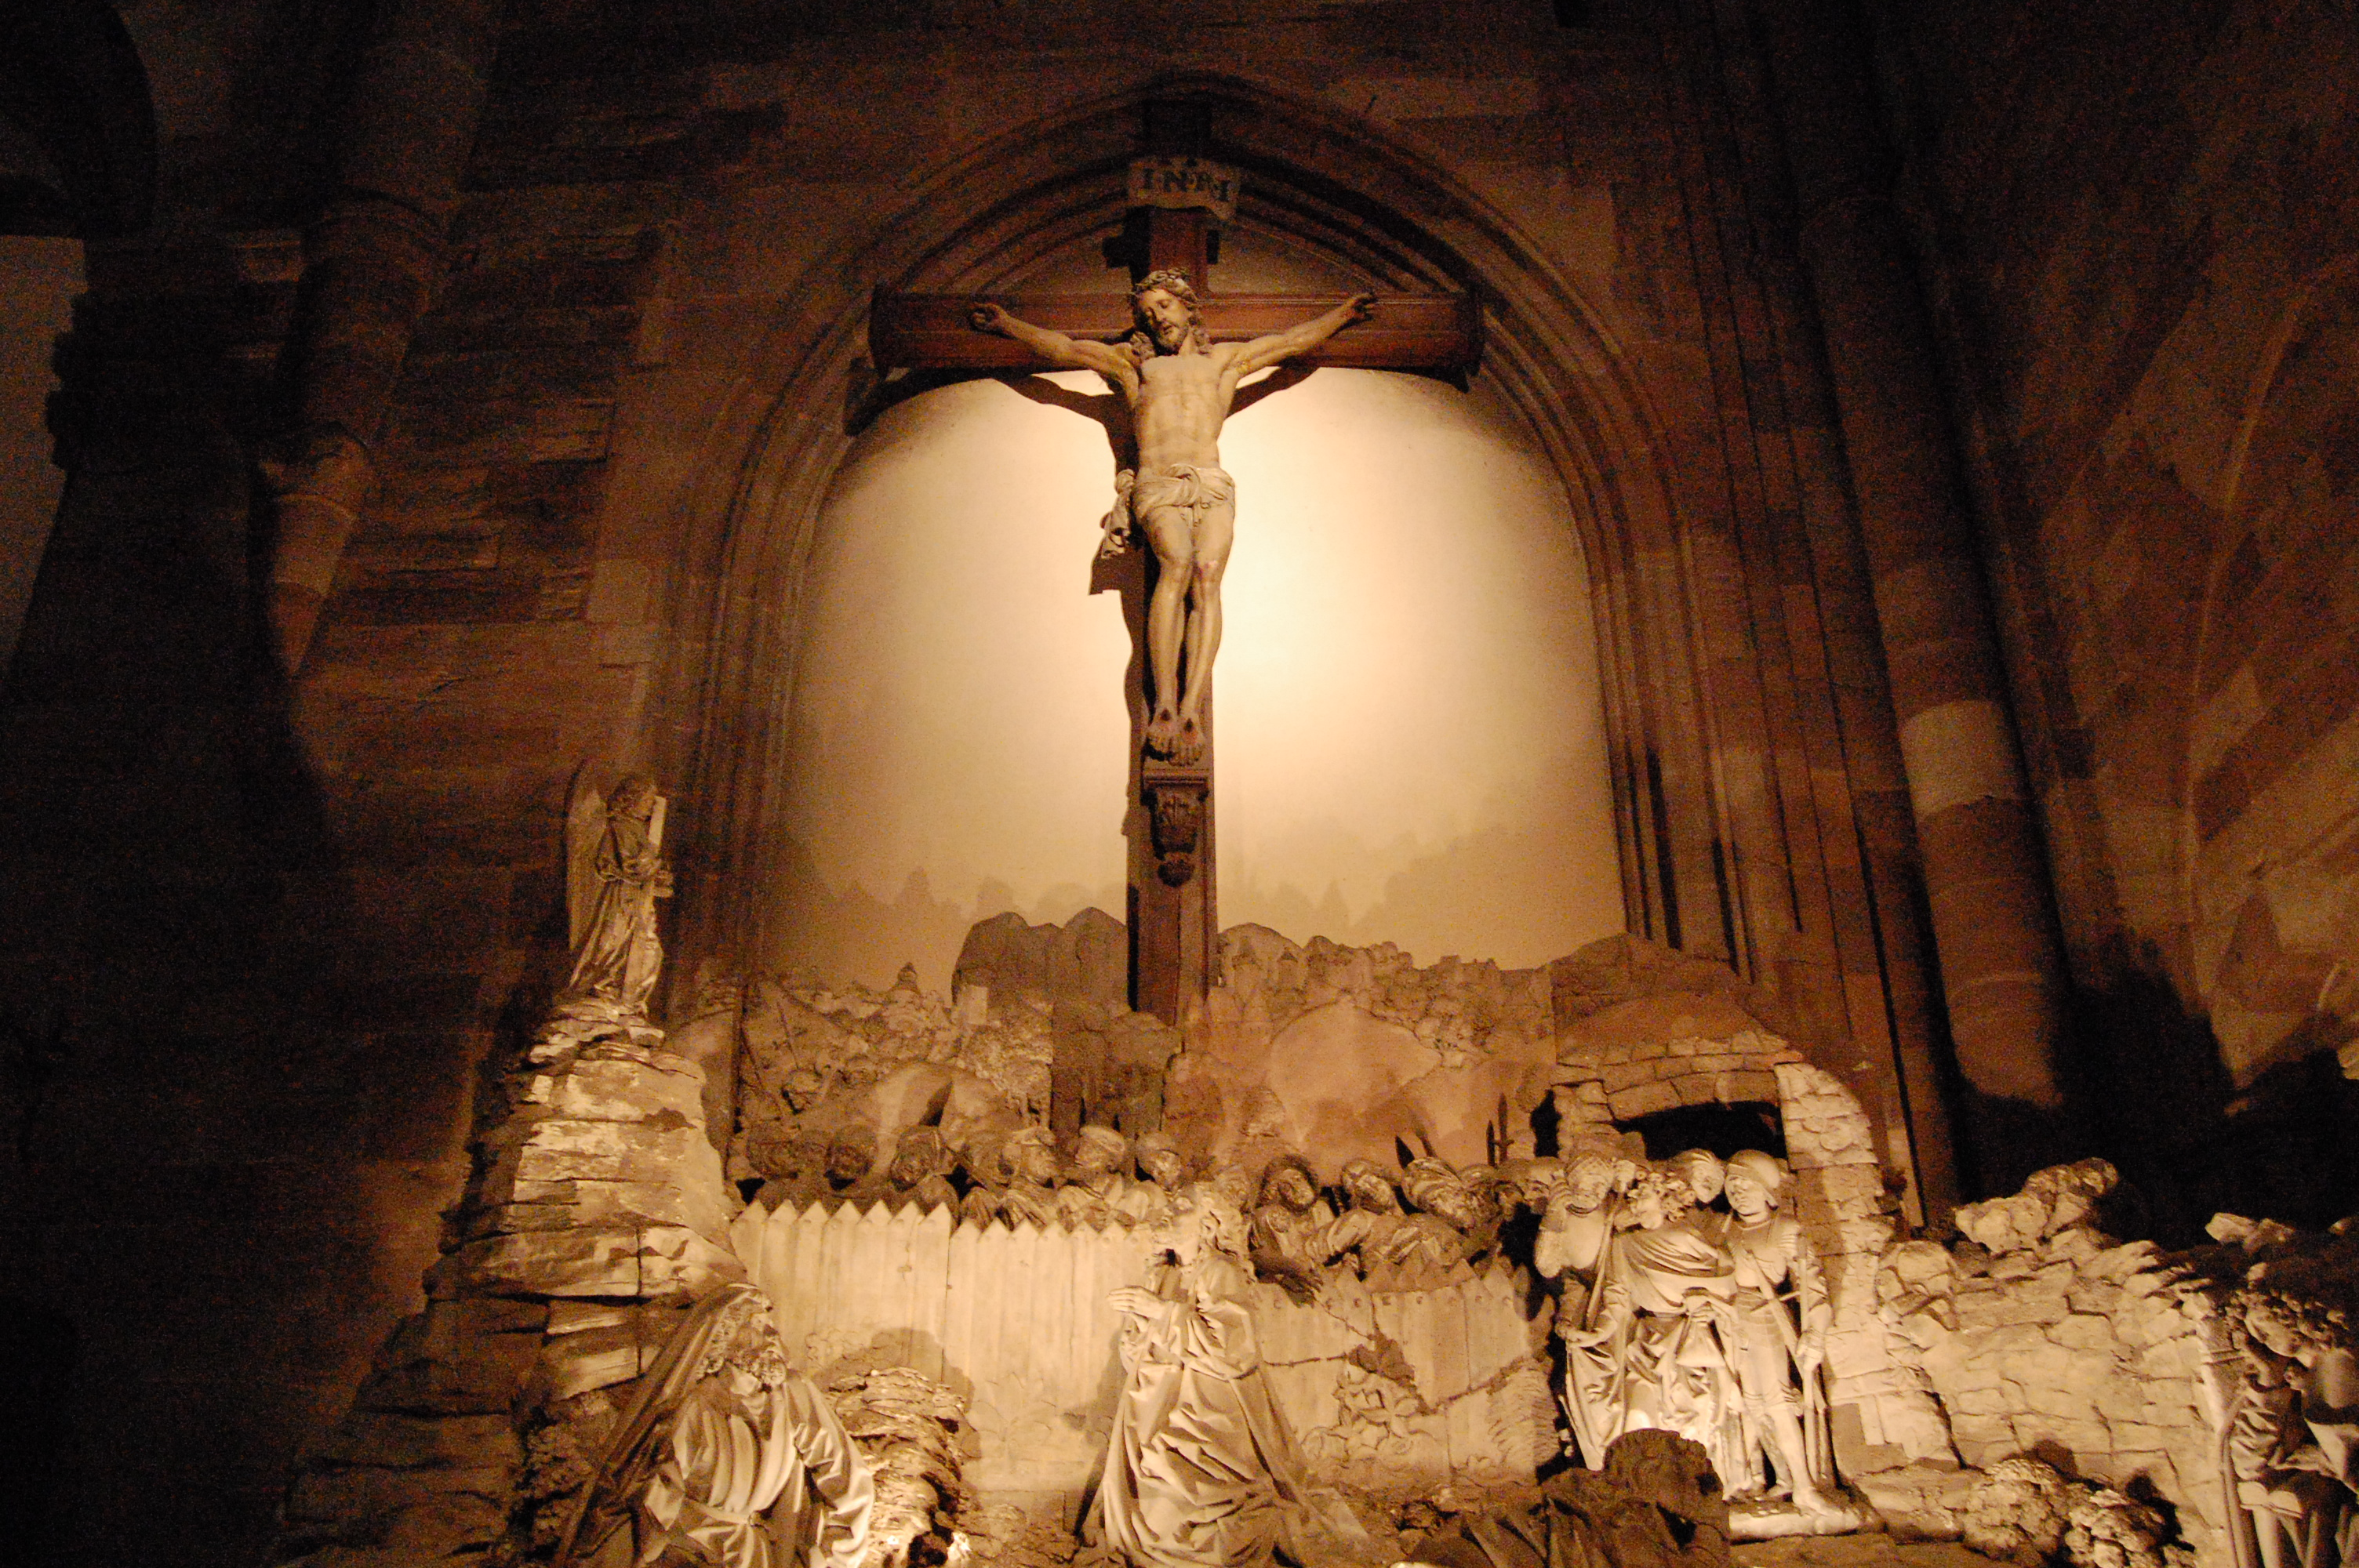 A crucifix hanging over a carved crowd of figures below it